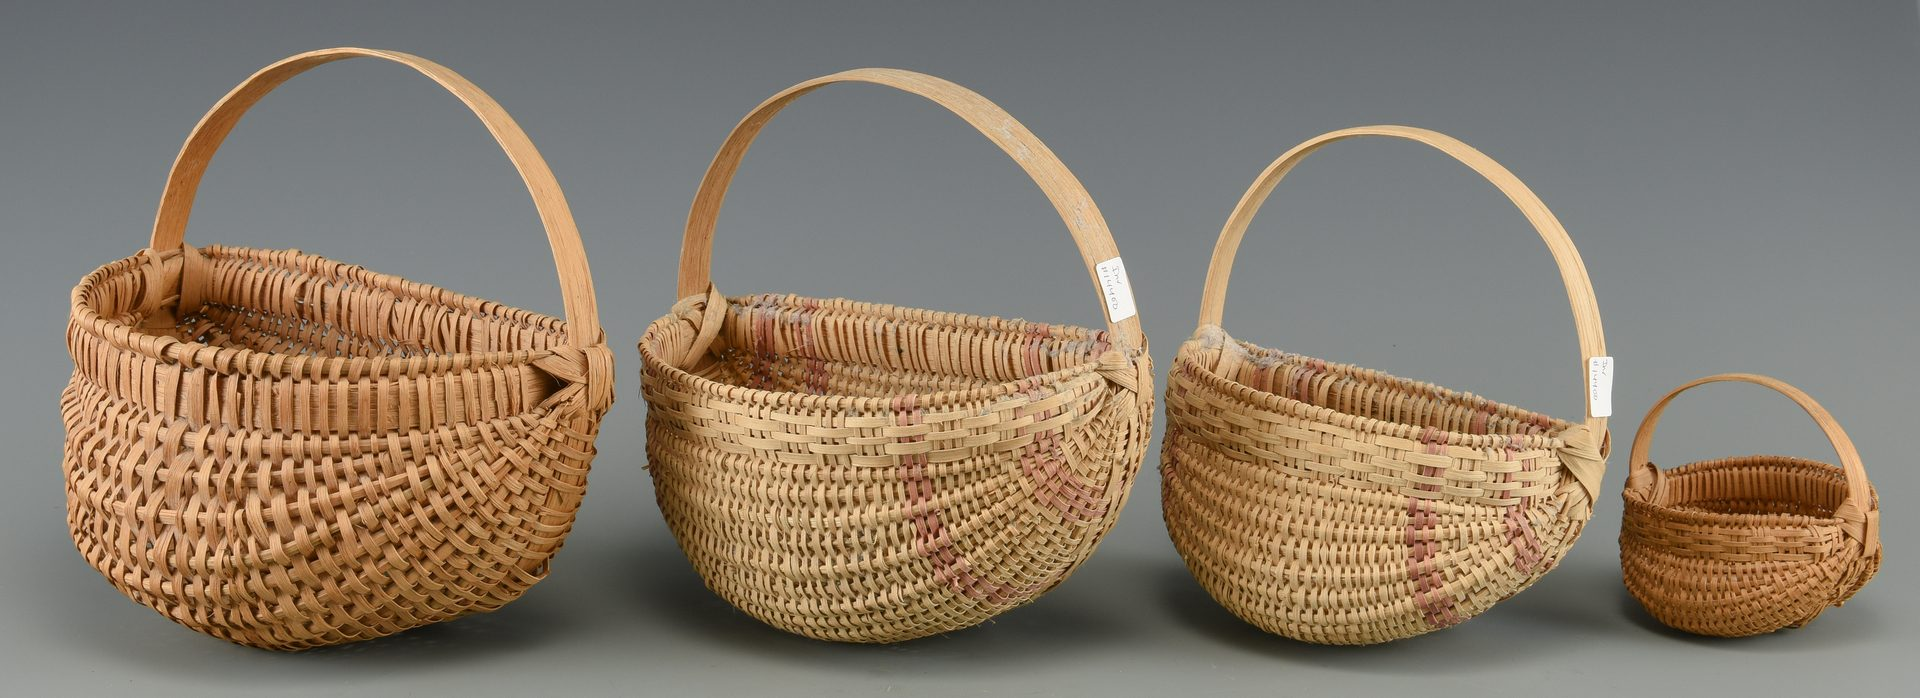 Lot 638: 7 Tennessee Baskets